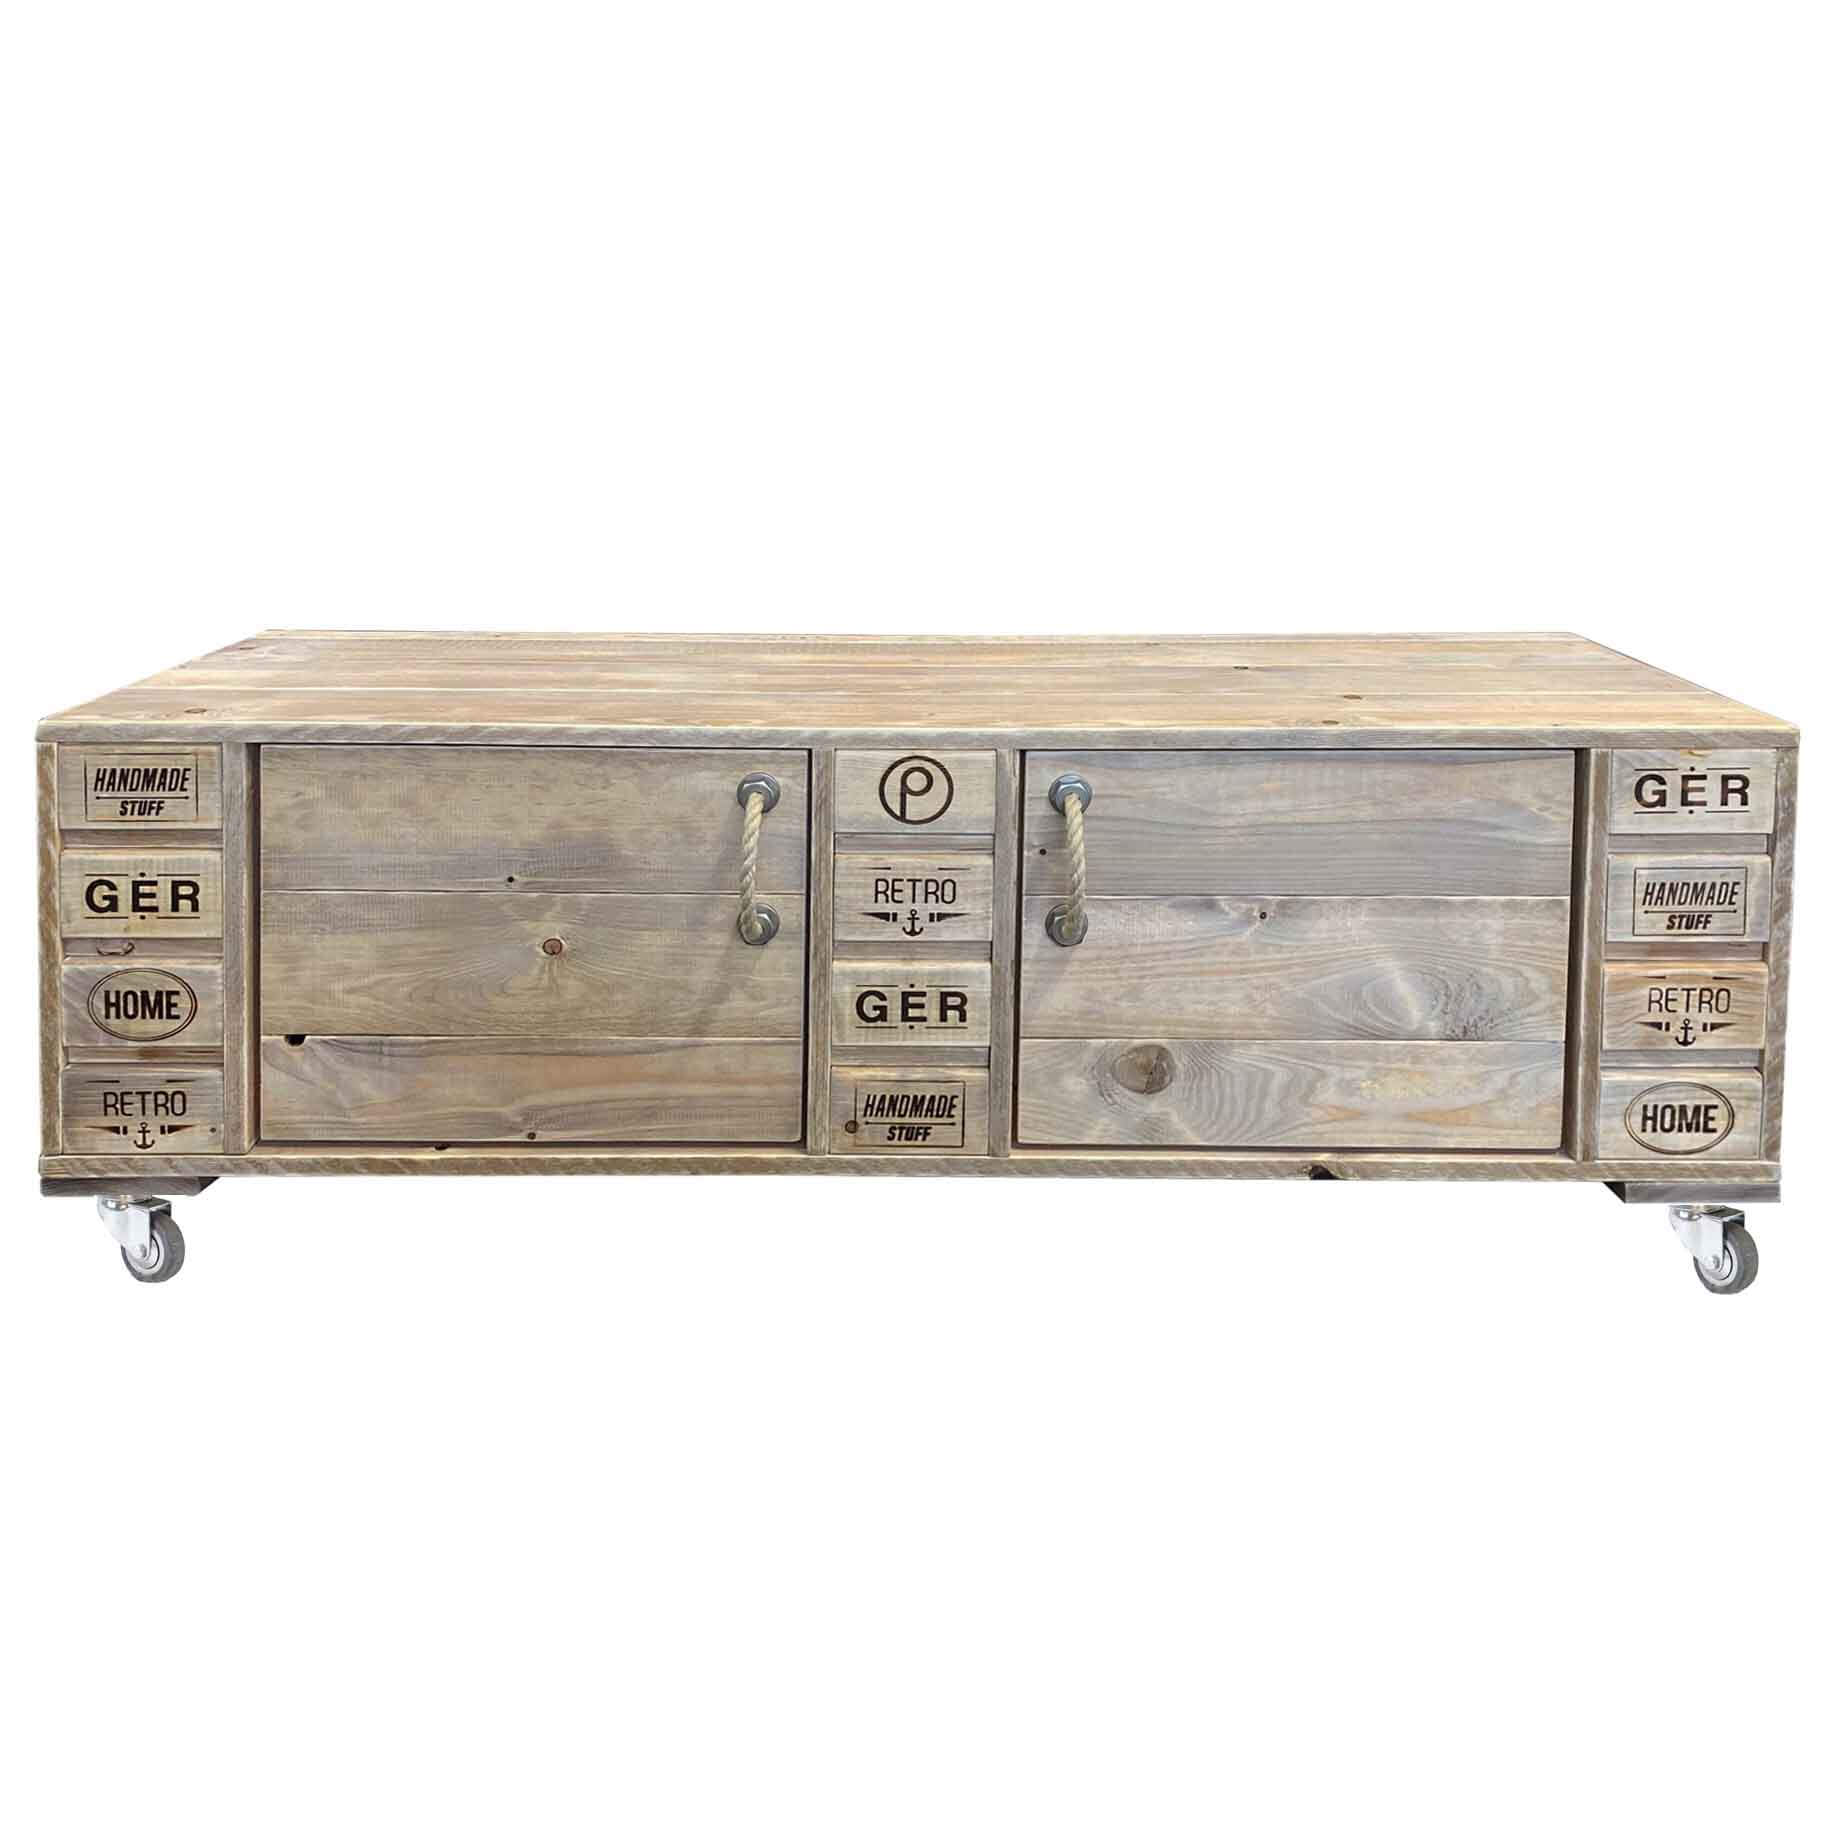 Kommode Sideboard ᐅ Sideboard Kommode Tv Board Dein Palettenmöbel Shop